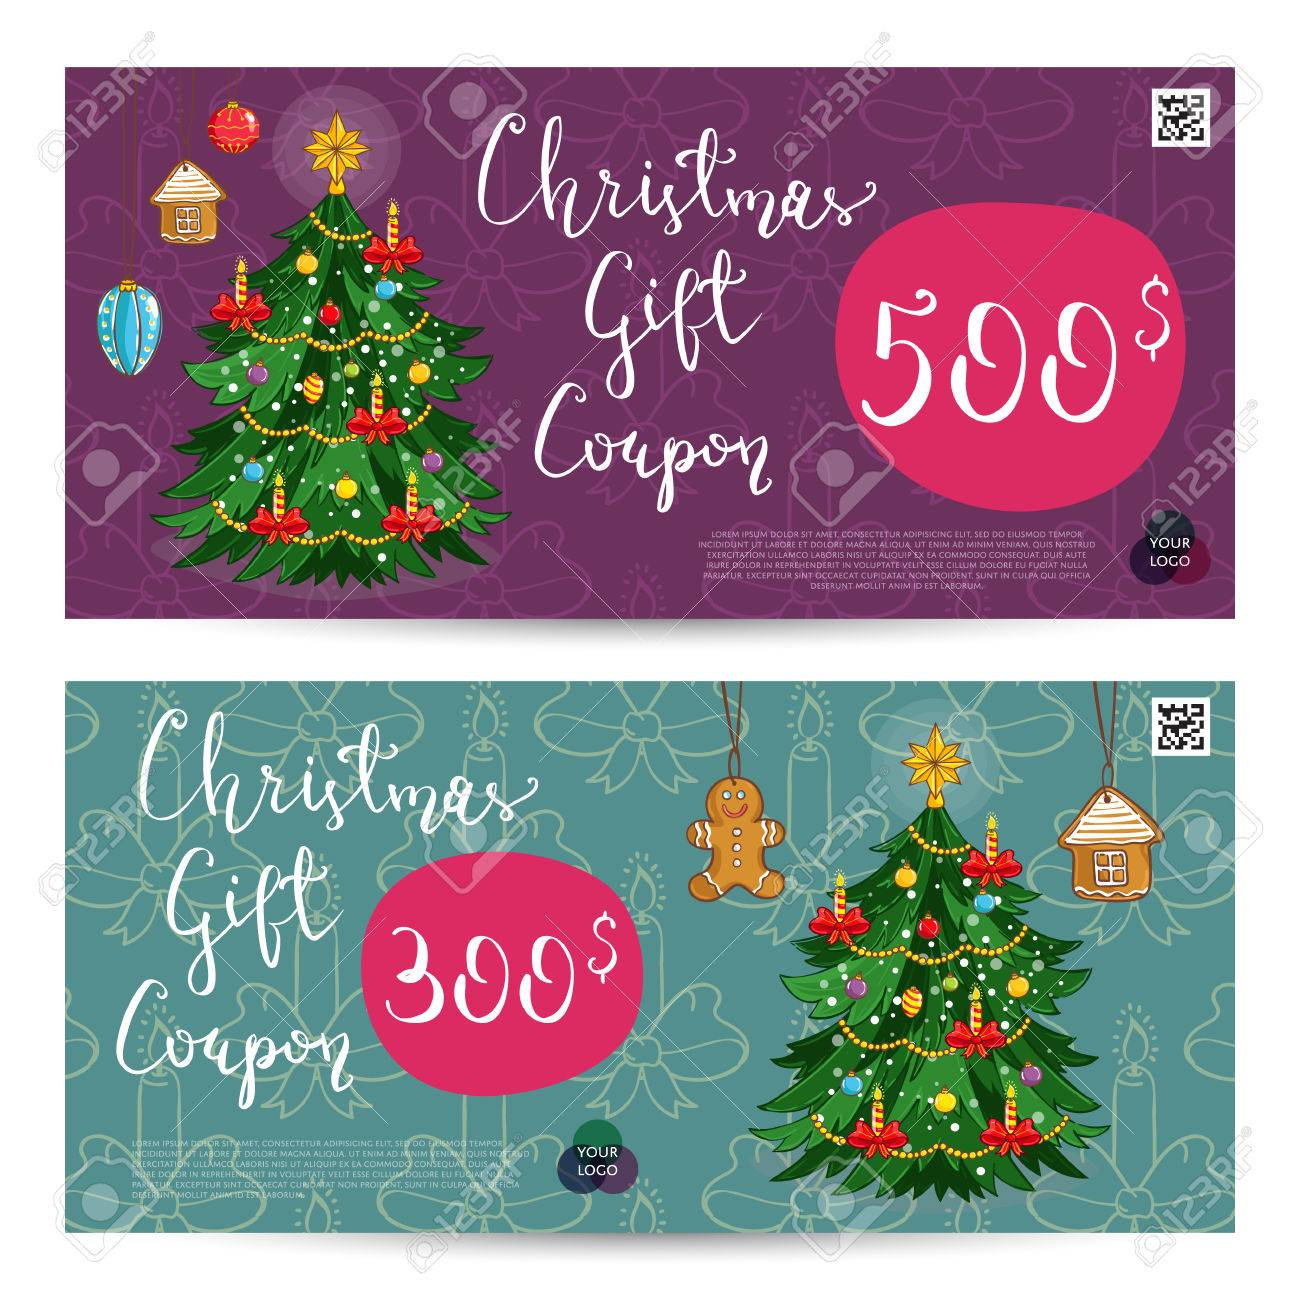 Christmas Gift Voucher Template. Gift Coupon With Xmas Attributes And  Prepaid Sum. Wrapped Gifts